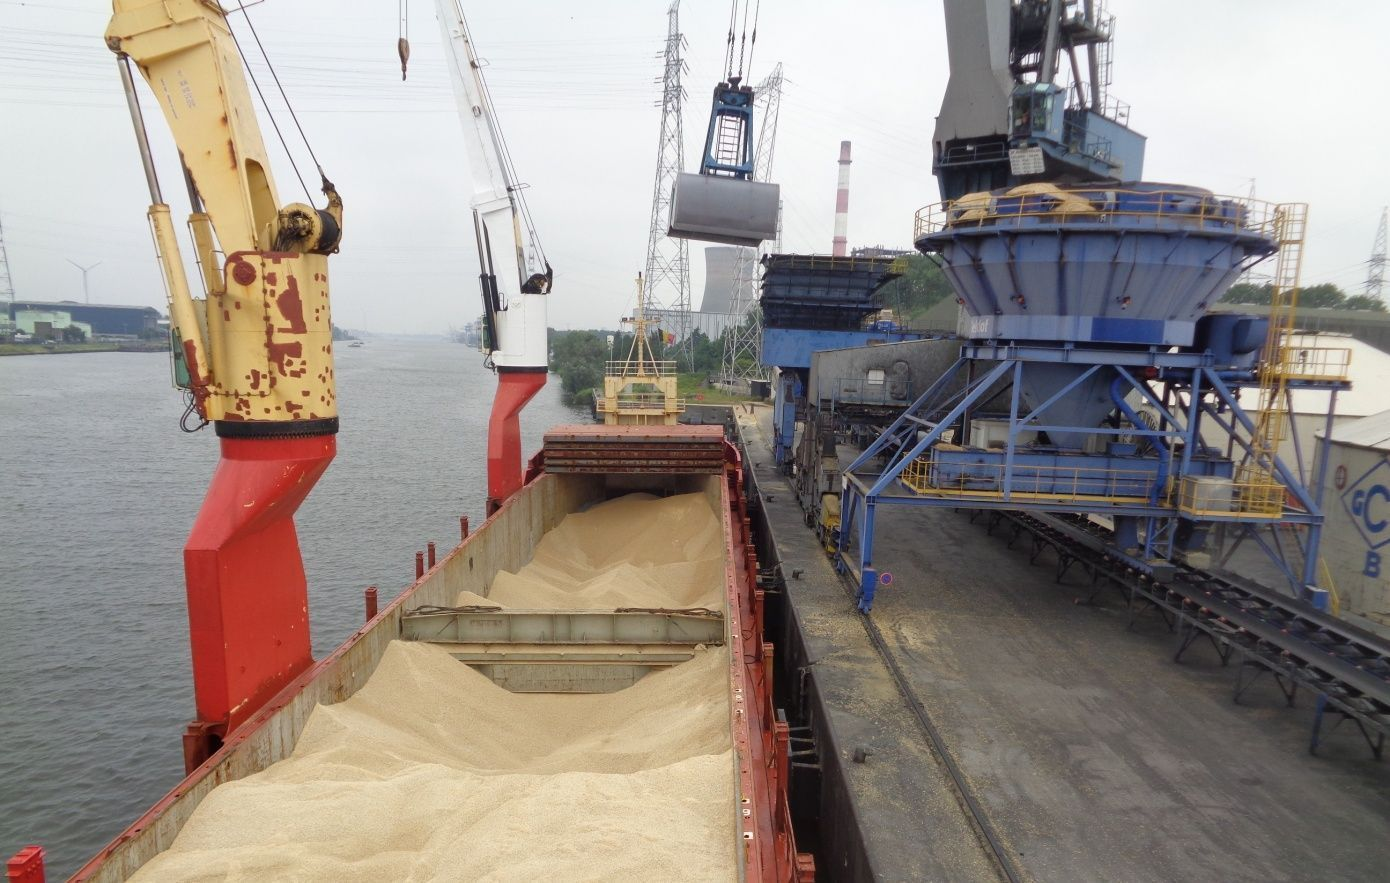 Barents has delivered cargo to the port of Ghent